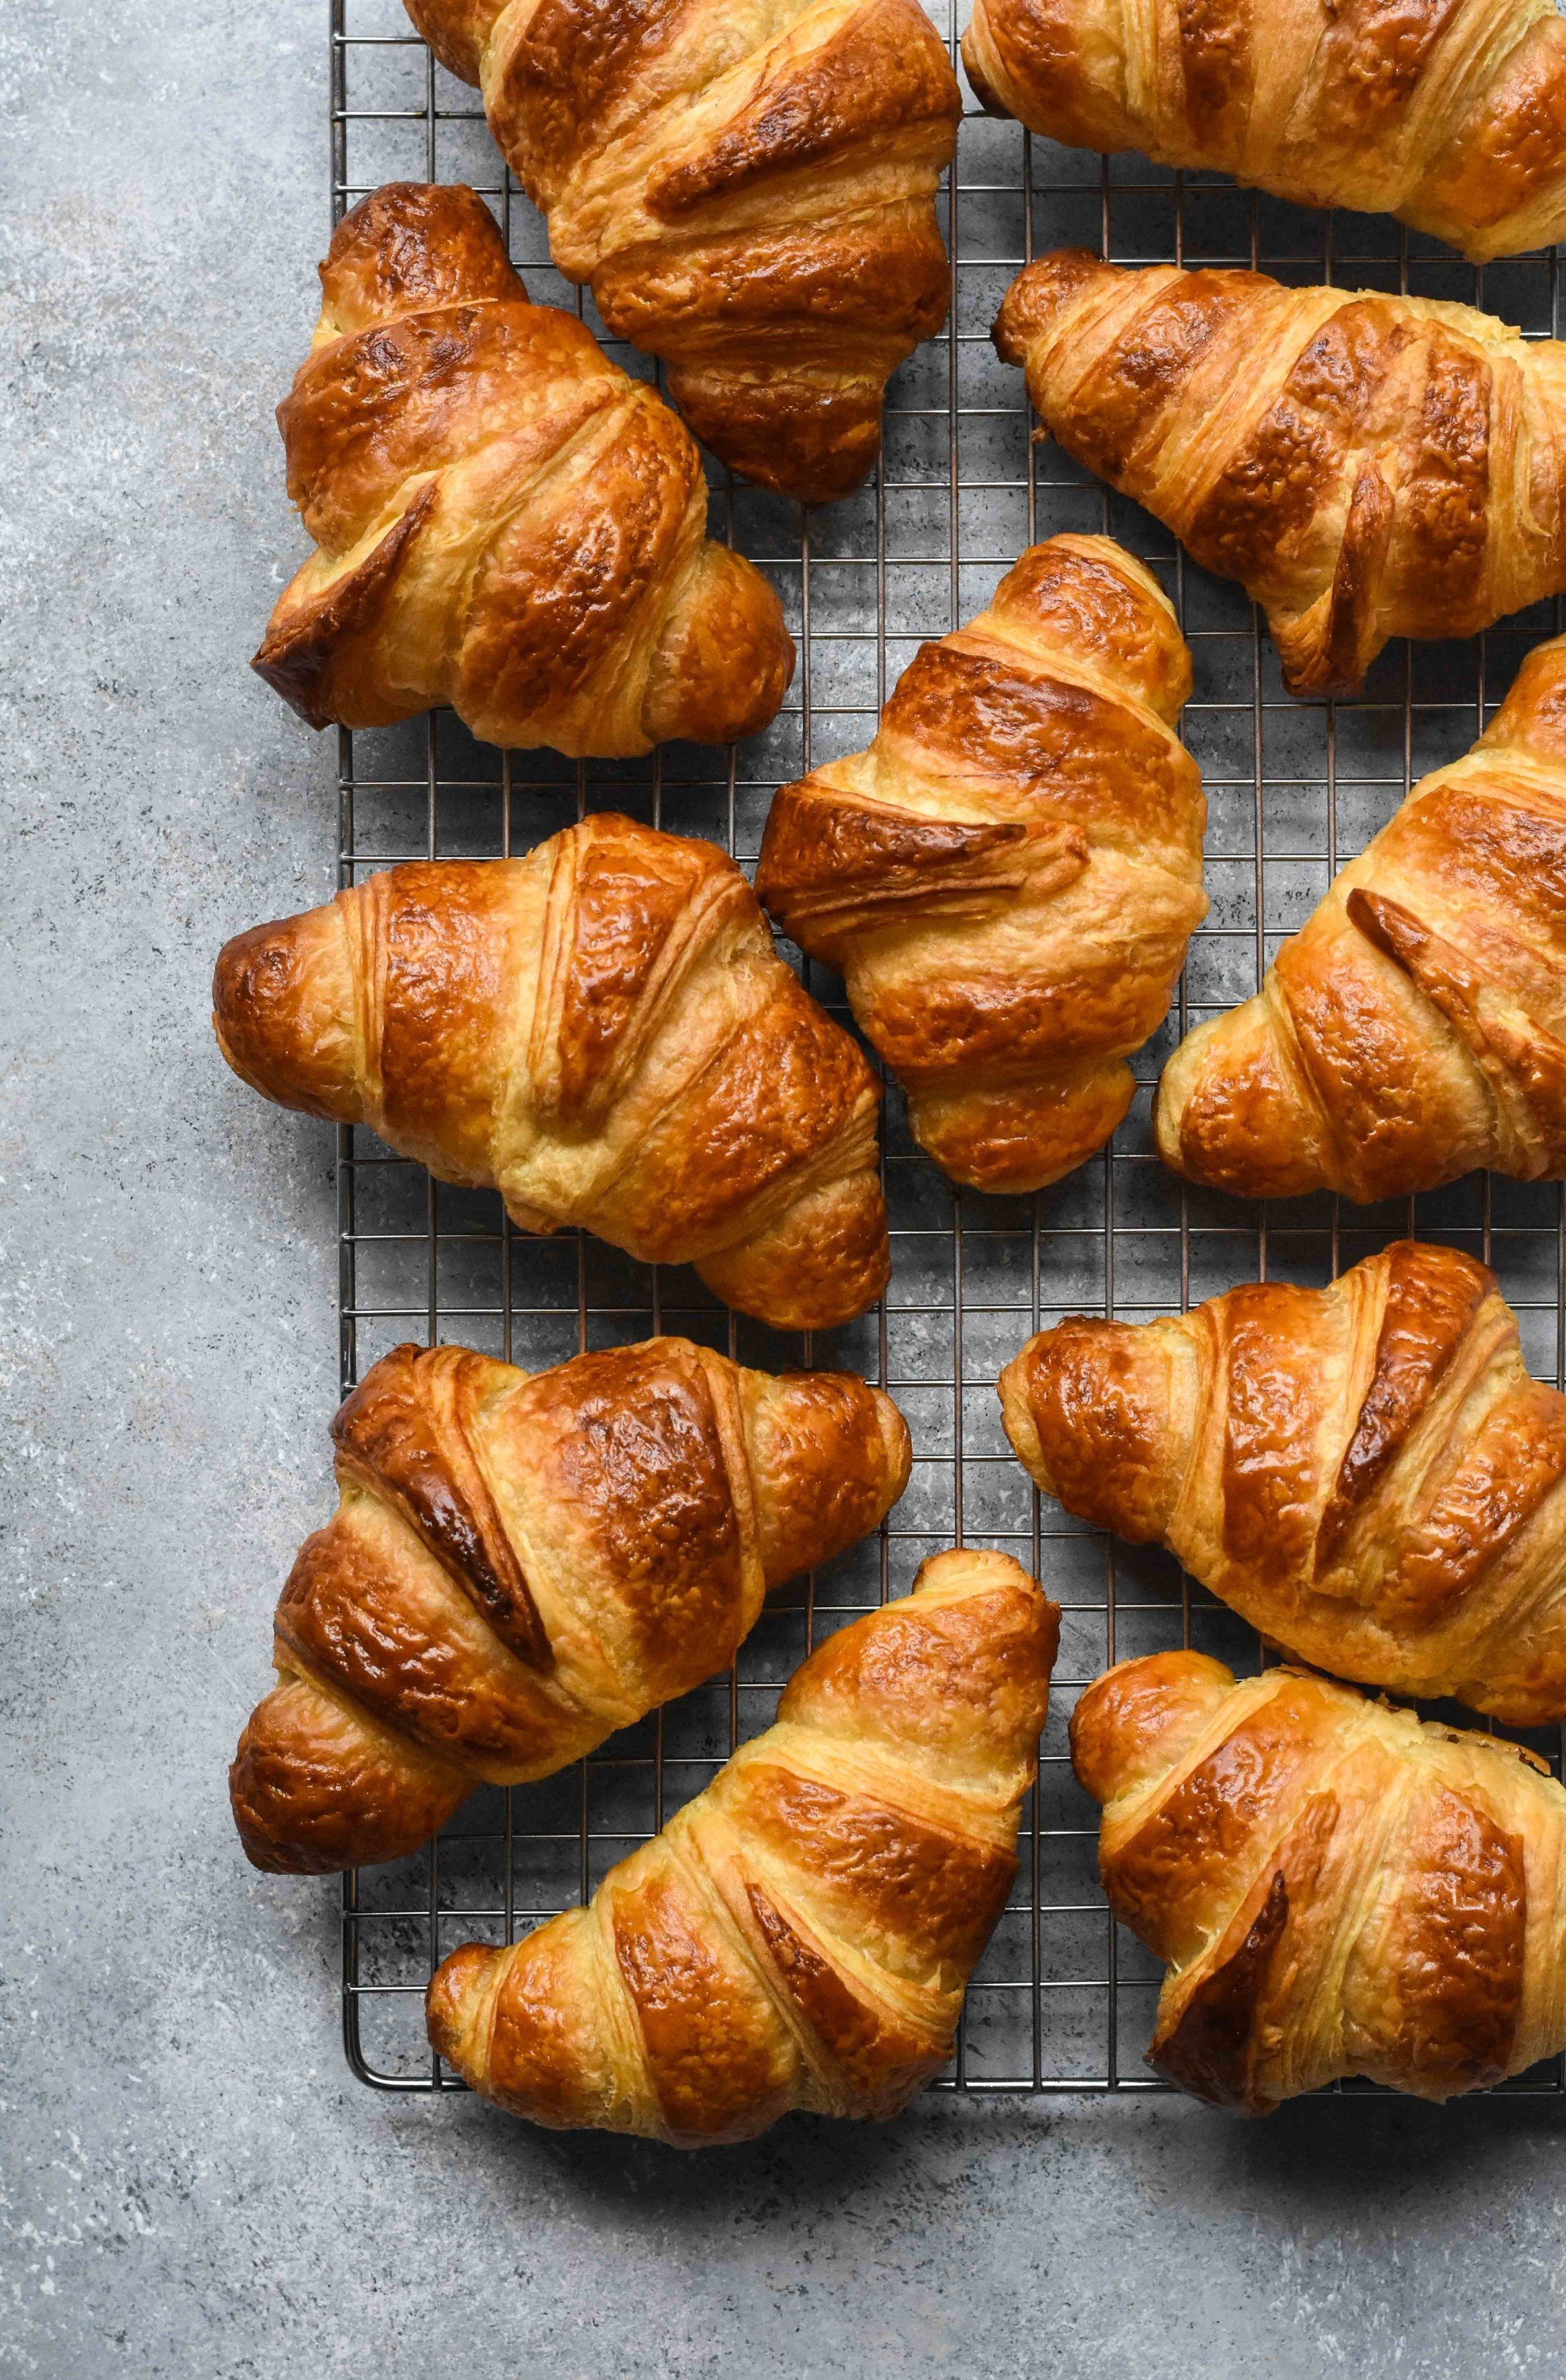 Classic French Croissants 101 Guide Croissant recipe